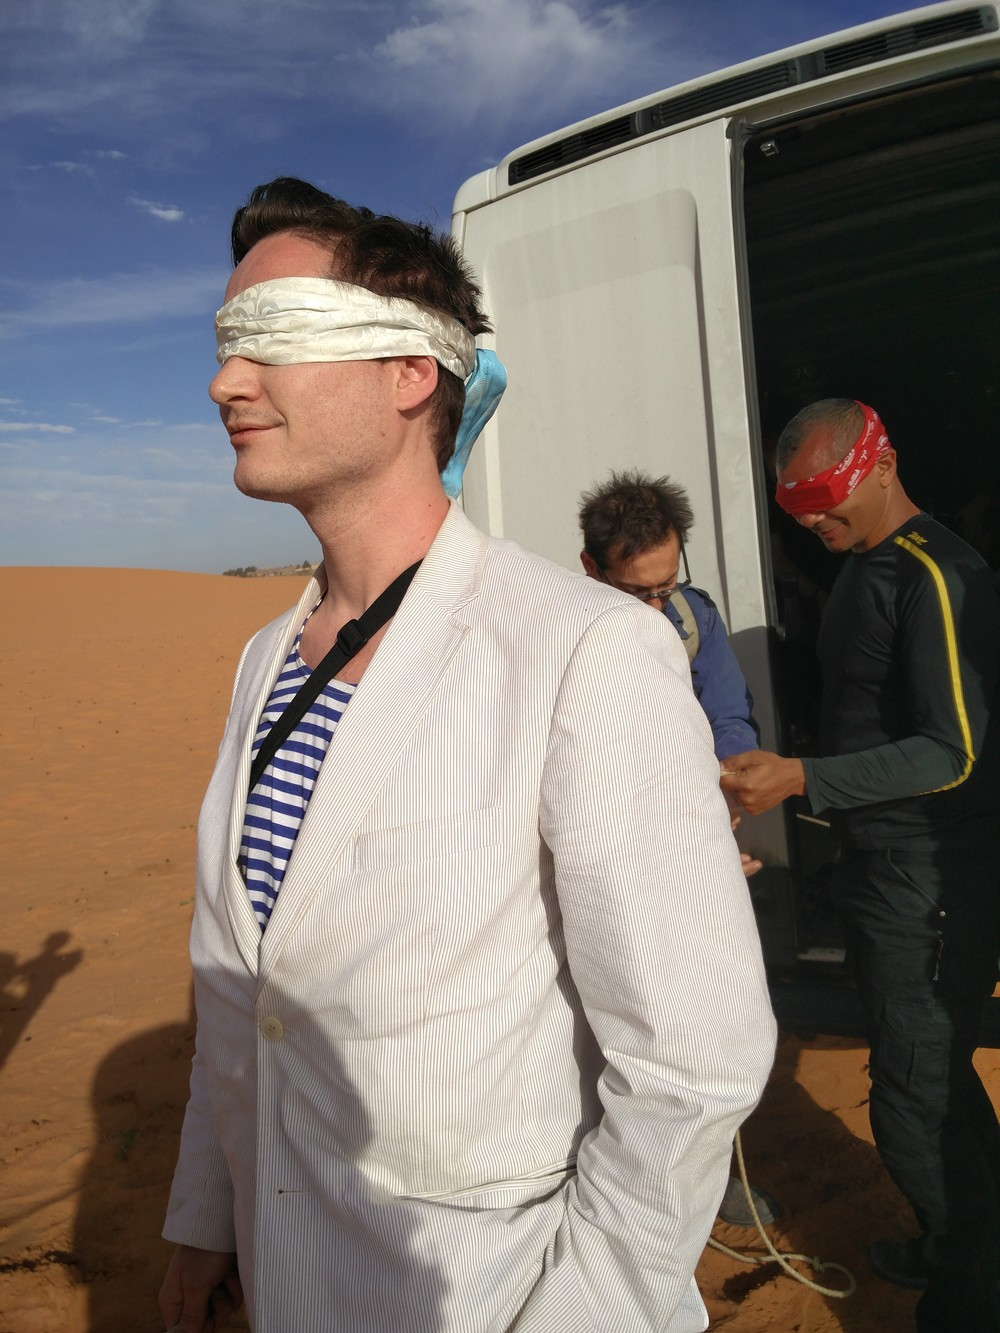 Blindfolded and taken into the desert